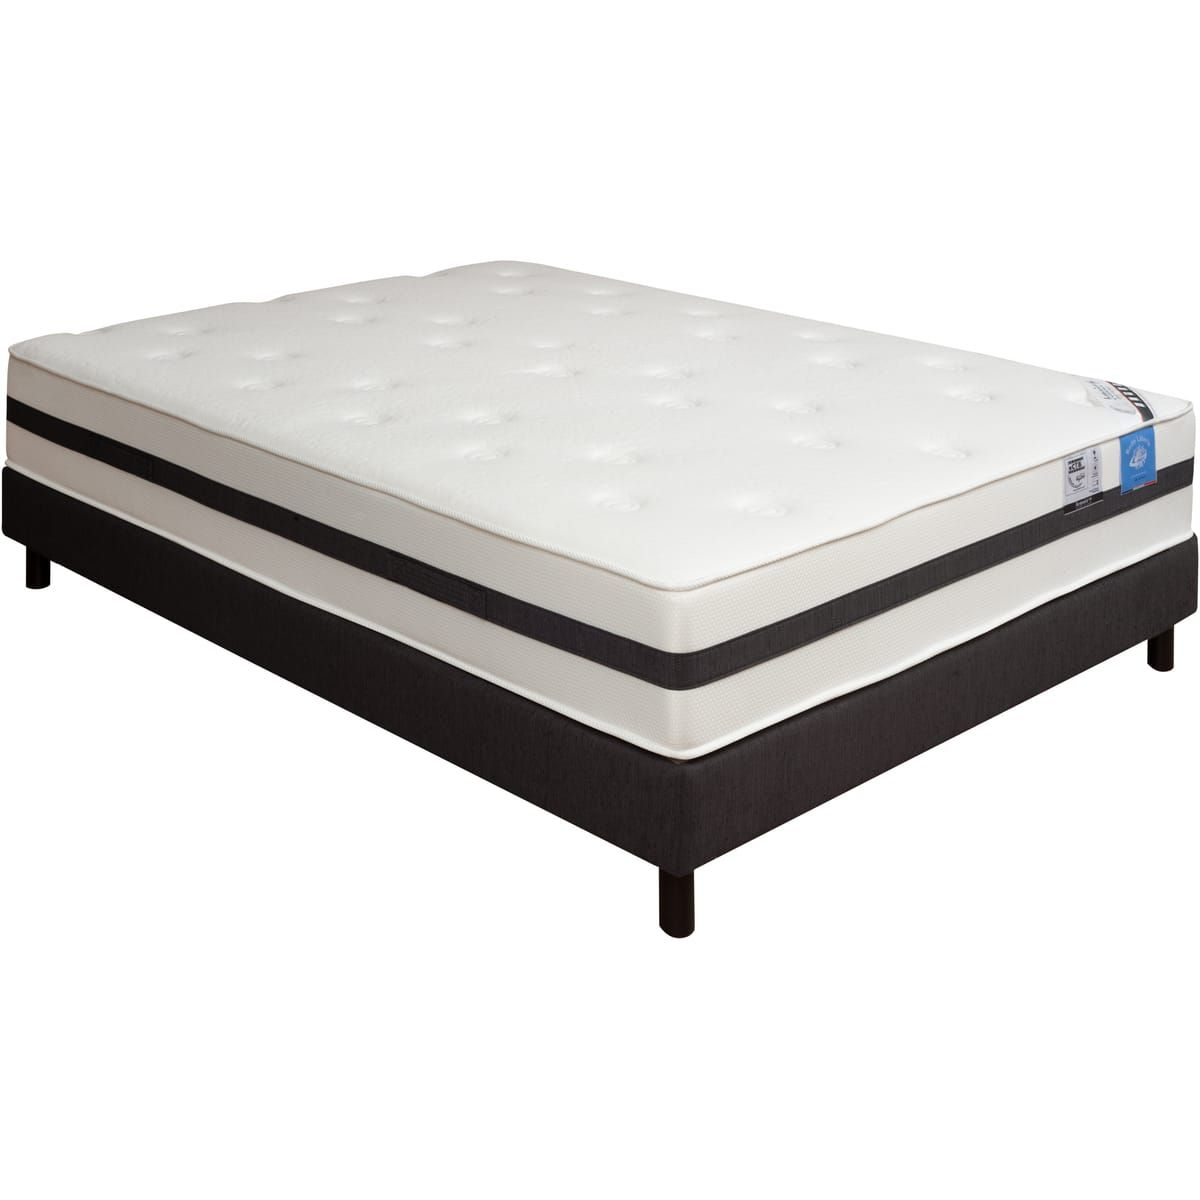 matelas mousse hr andalou 140x190cm belle literie benoist bons plans pas cher pinterest. Black Bedroom Furniture Sets. Home Design Ideas